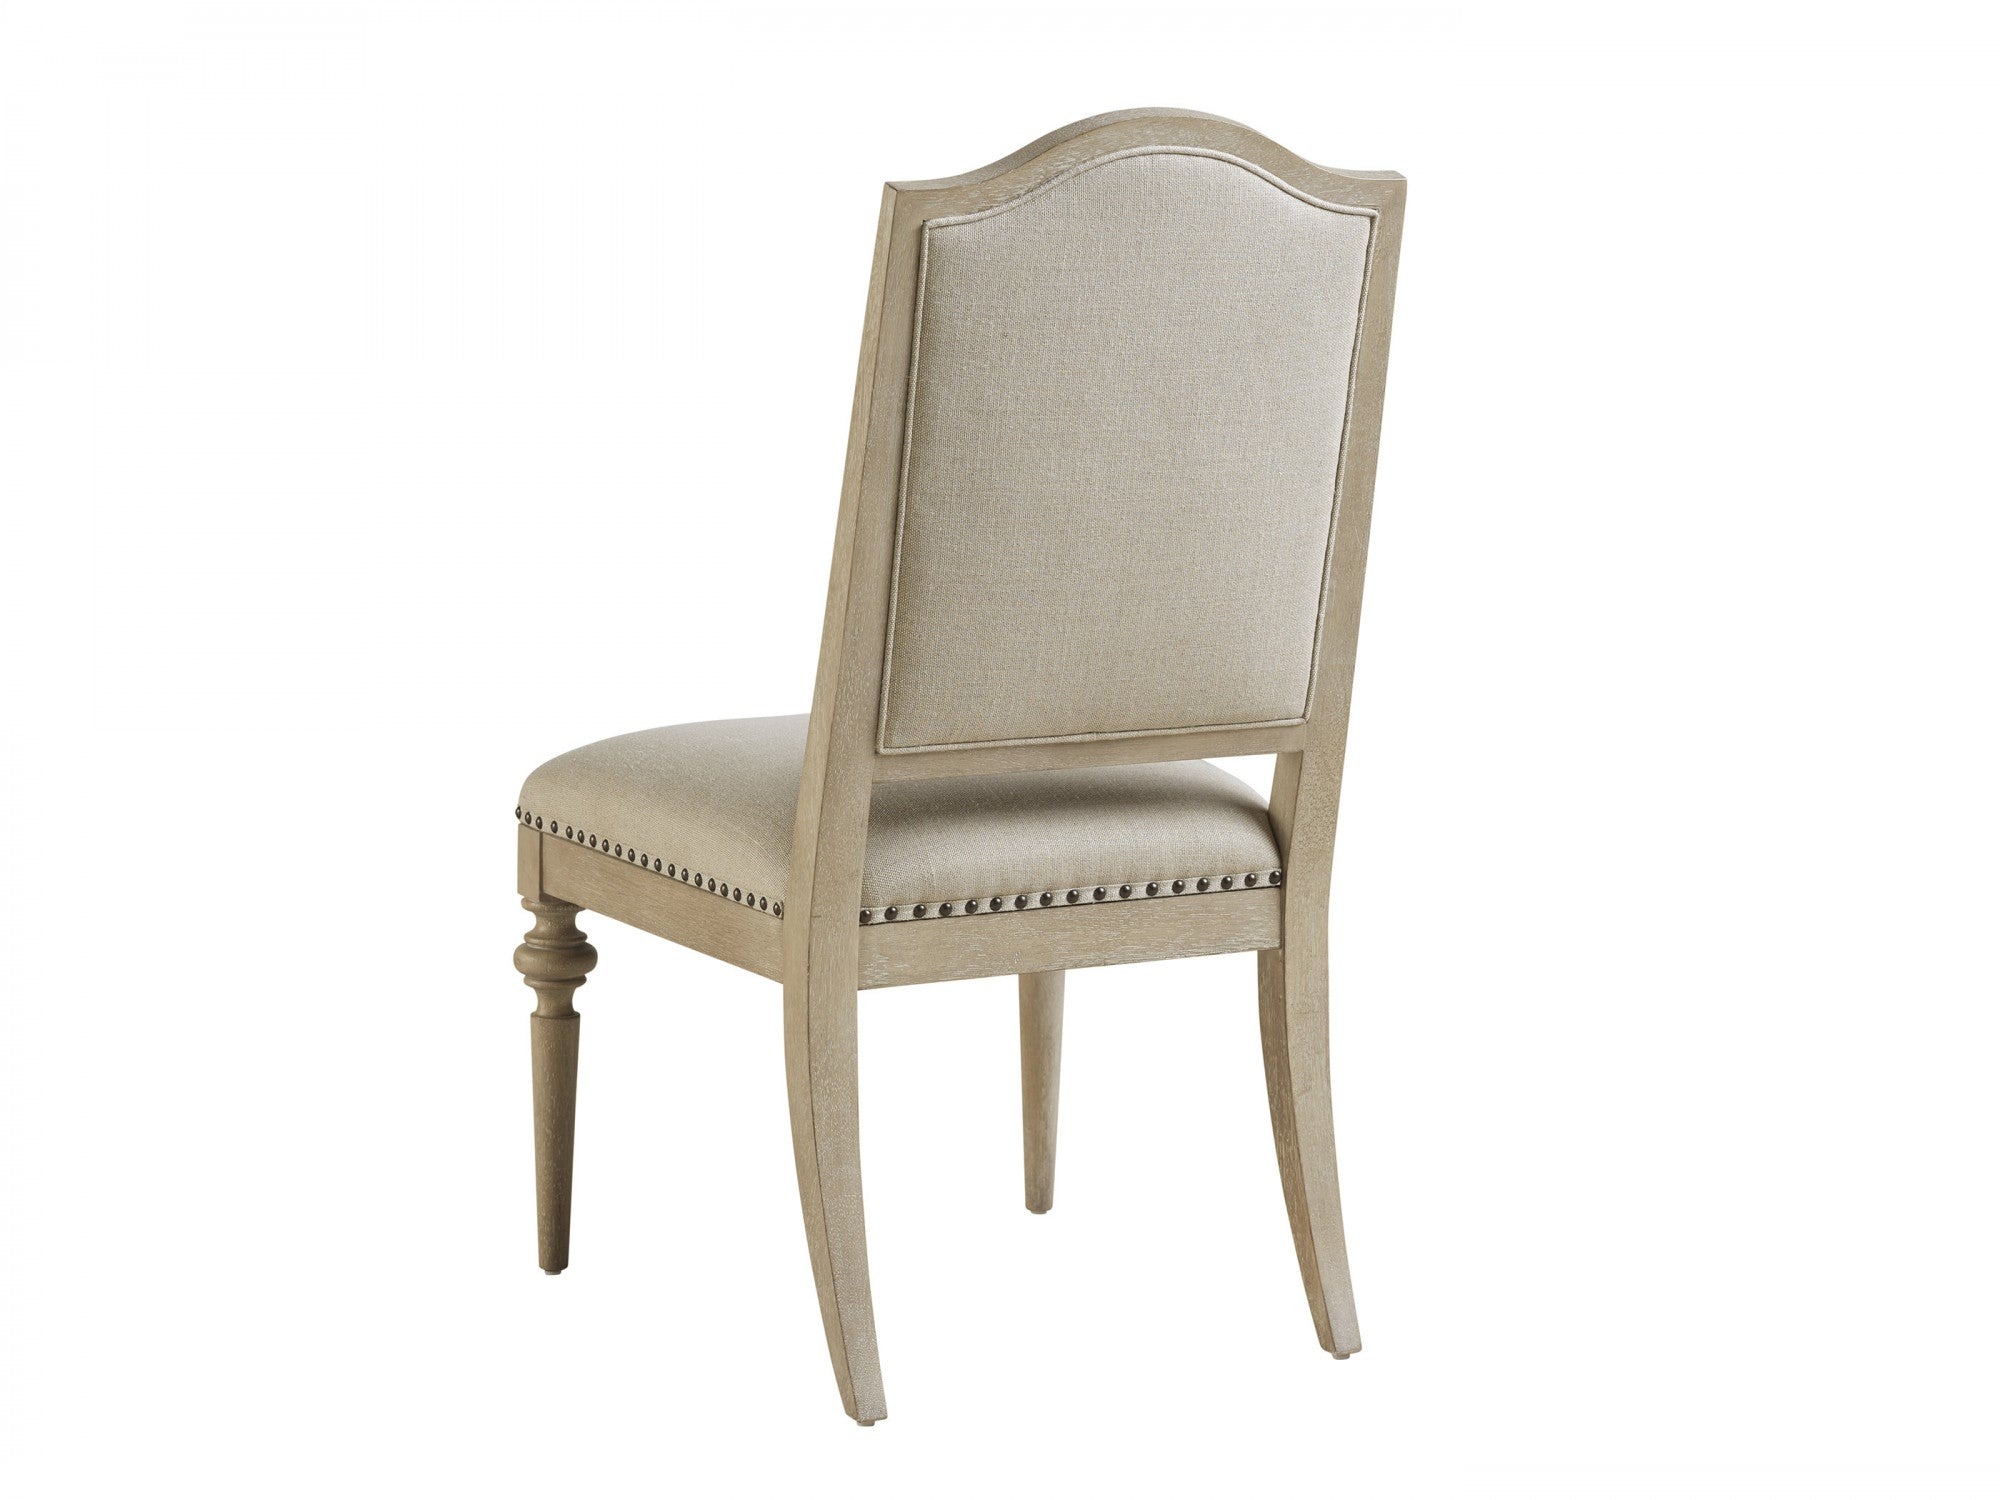 Aidan Upholstered Side Chair in Moonshadow